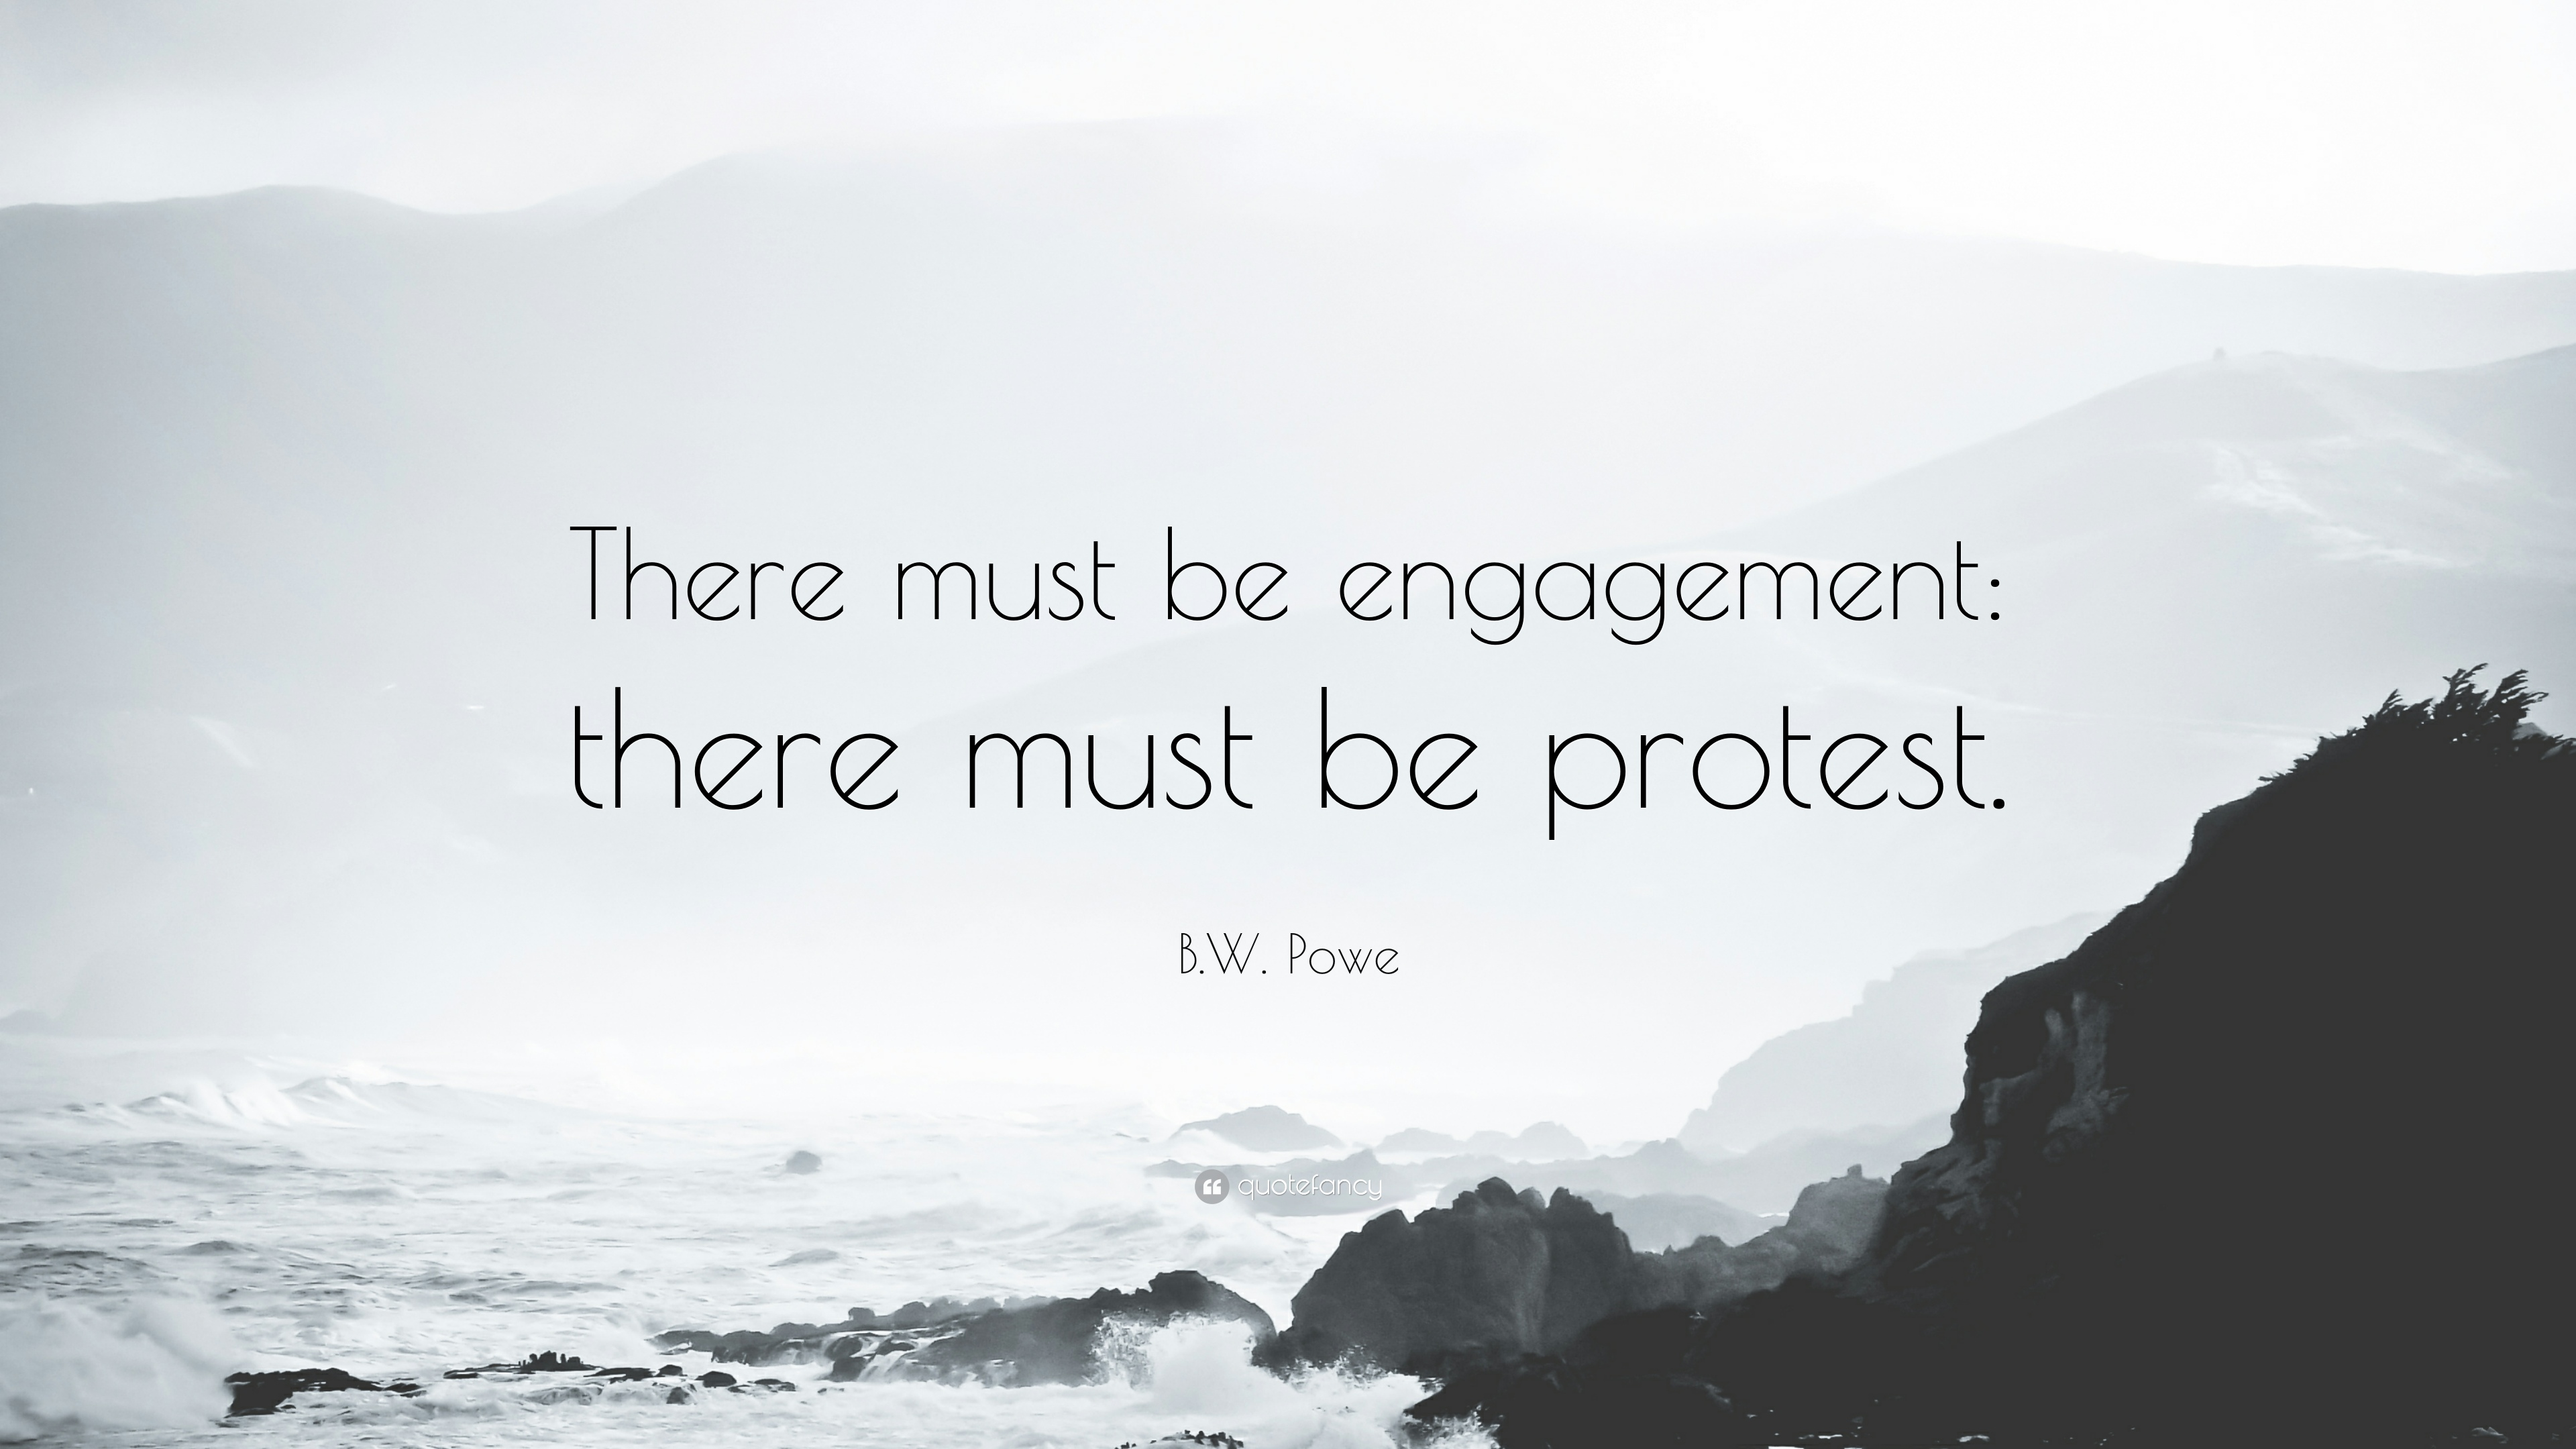 B w powe quote there must be engagement there must be protest